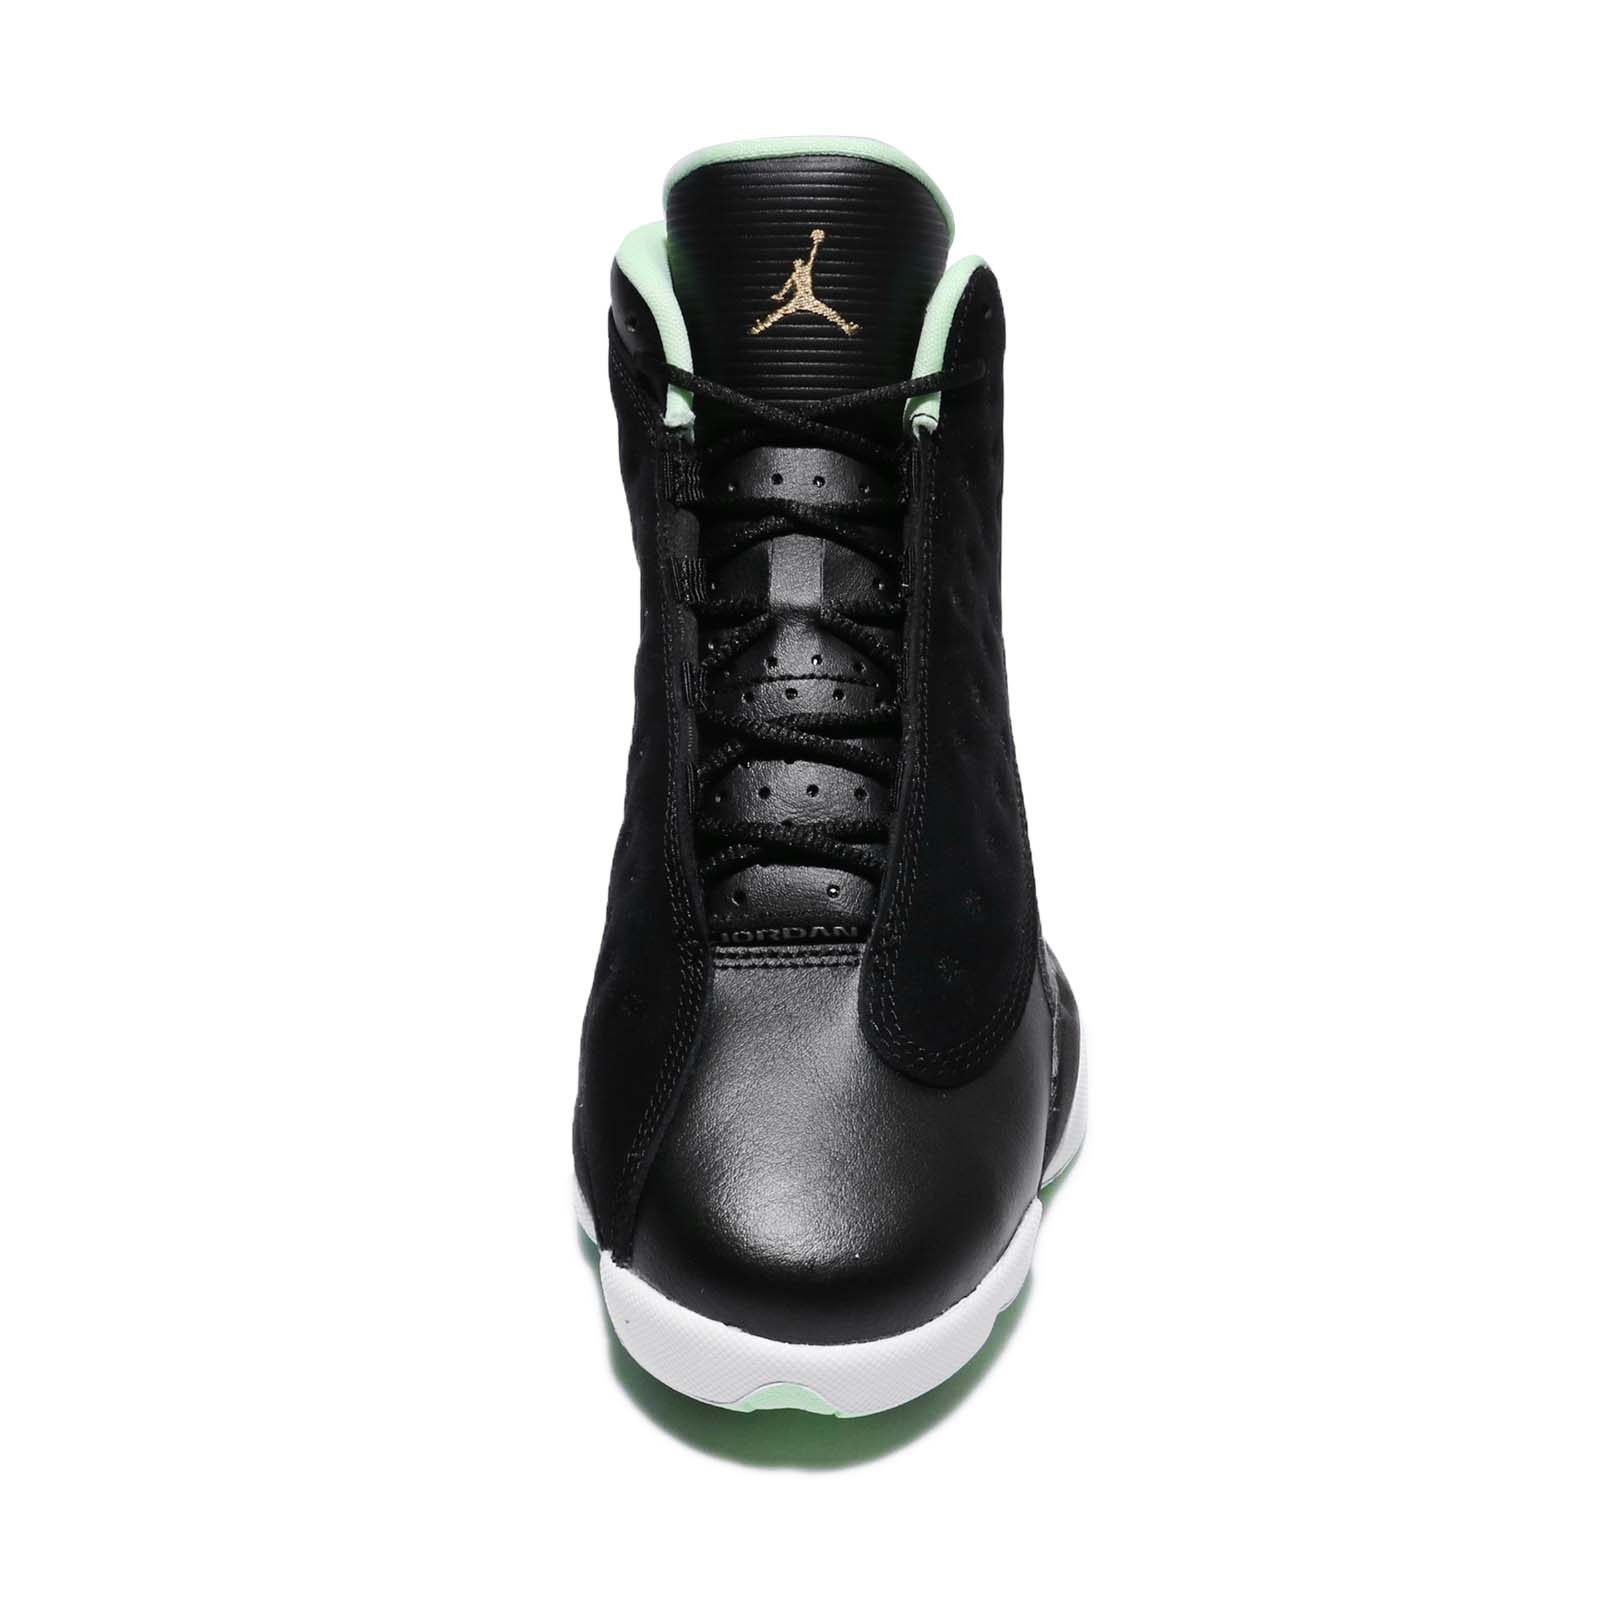 fa51651e682 Nike Air Jordan Retro 13 GG Left Foot With Discoloration Kid Youth ...